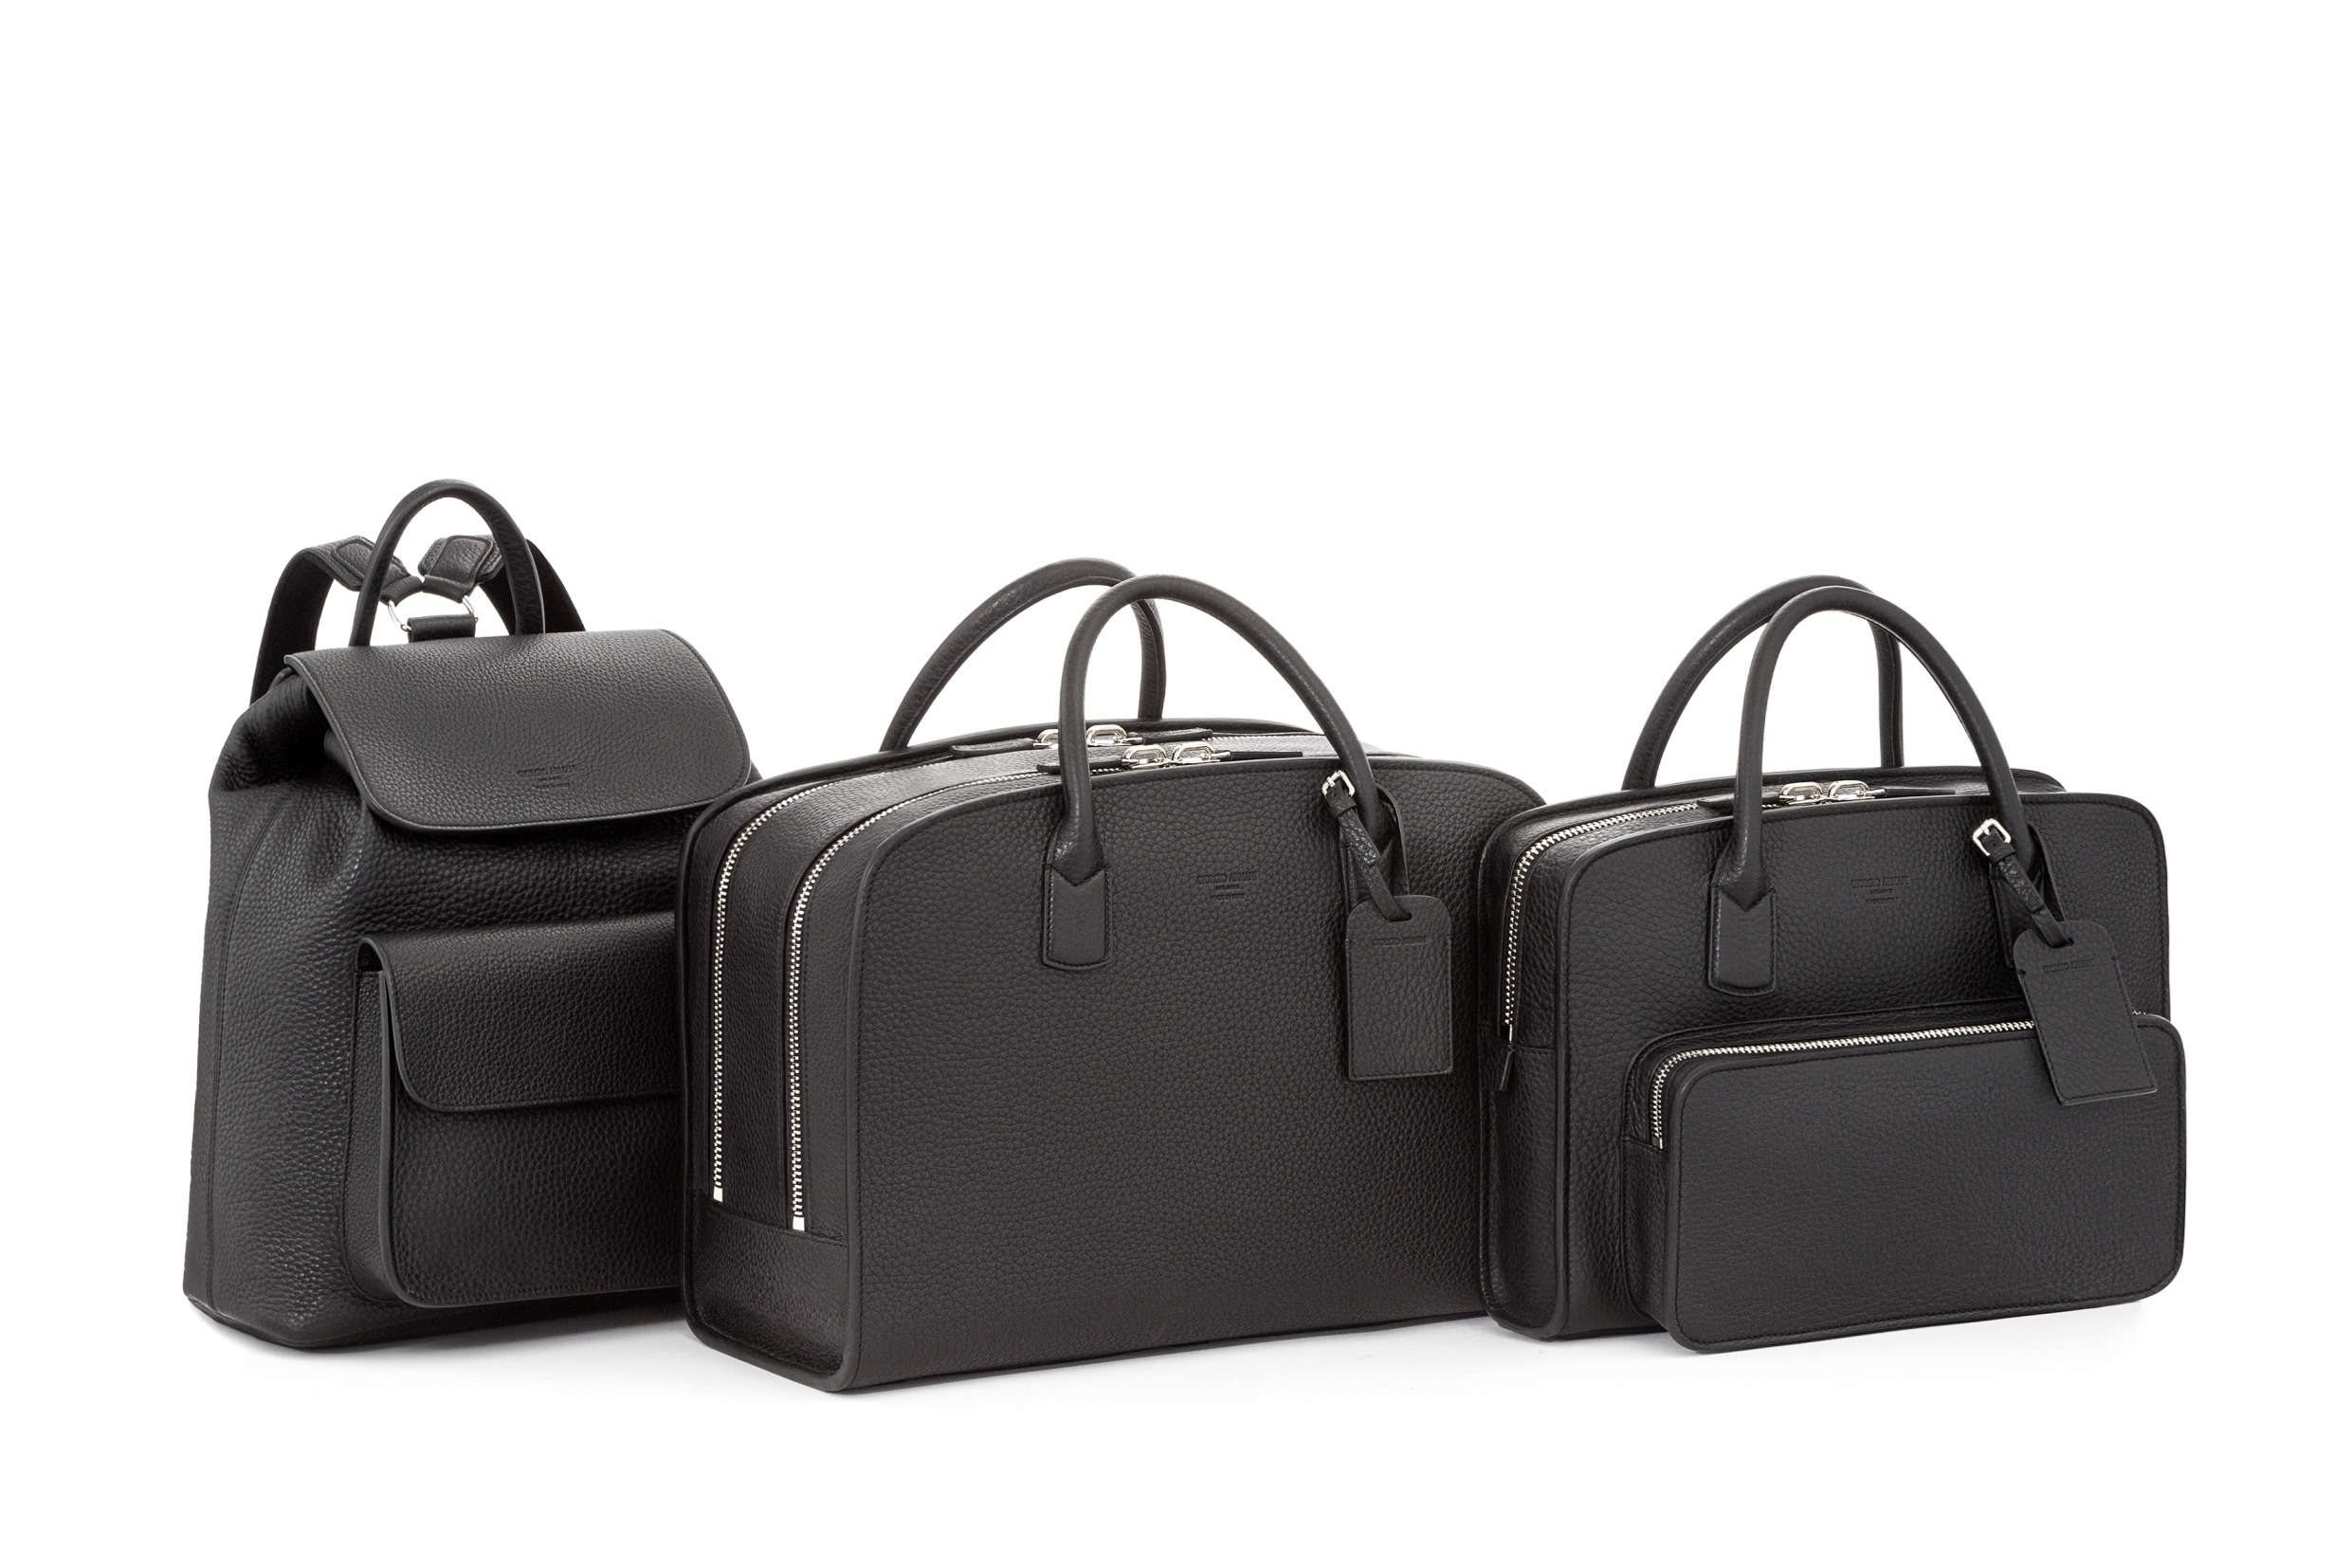 Giorgio Armani adds travel bag and backpack to its Private